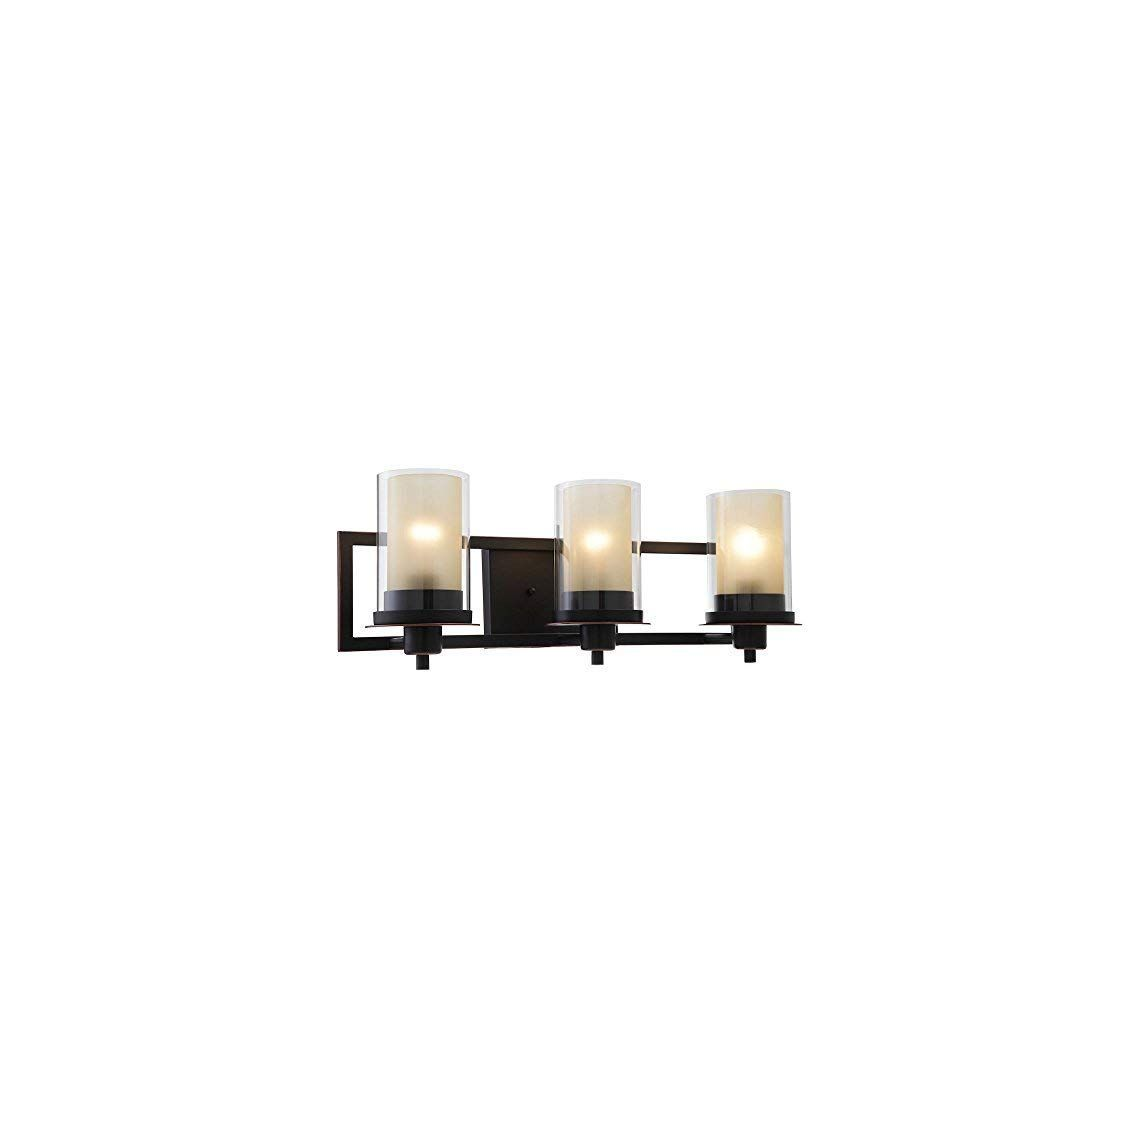 Photo of Designers Impressions Juno Oil Rubbed Bronze 3 Light Wall Sconce/Bathroom Fixture with Amber …